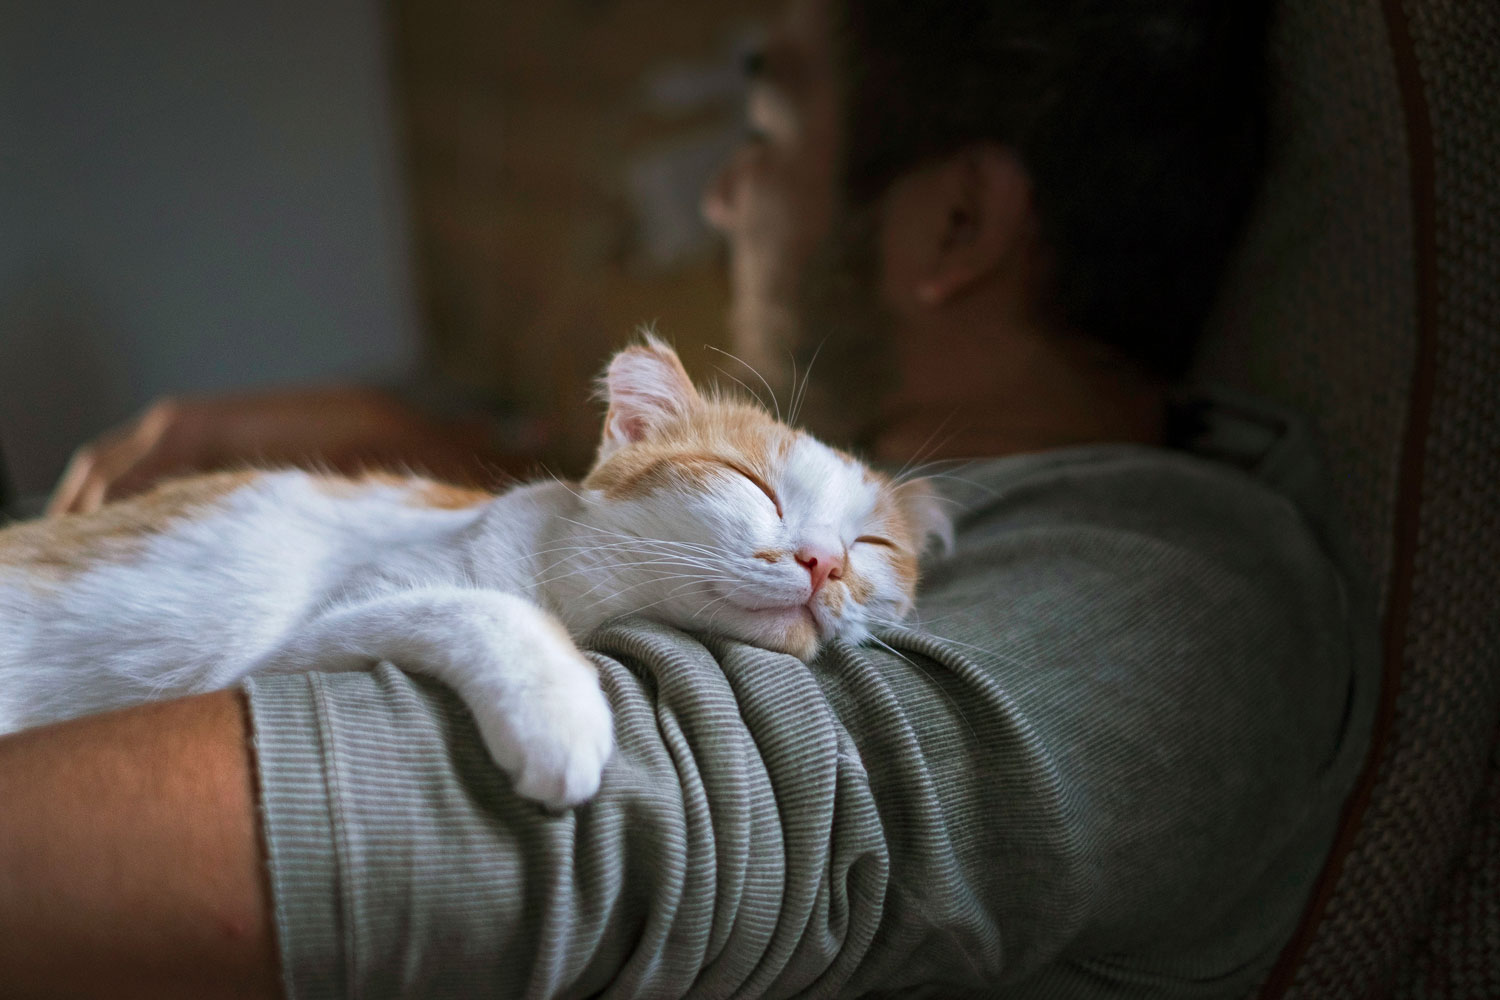 A brown and white domestic cat lying on his owner's shoulder while sleeping